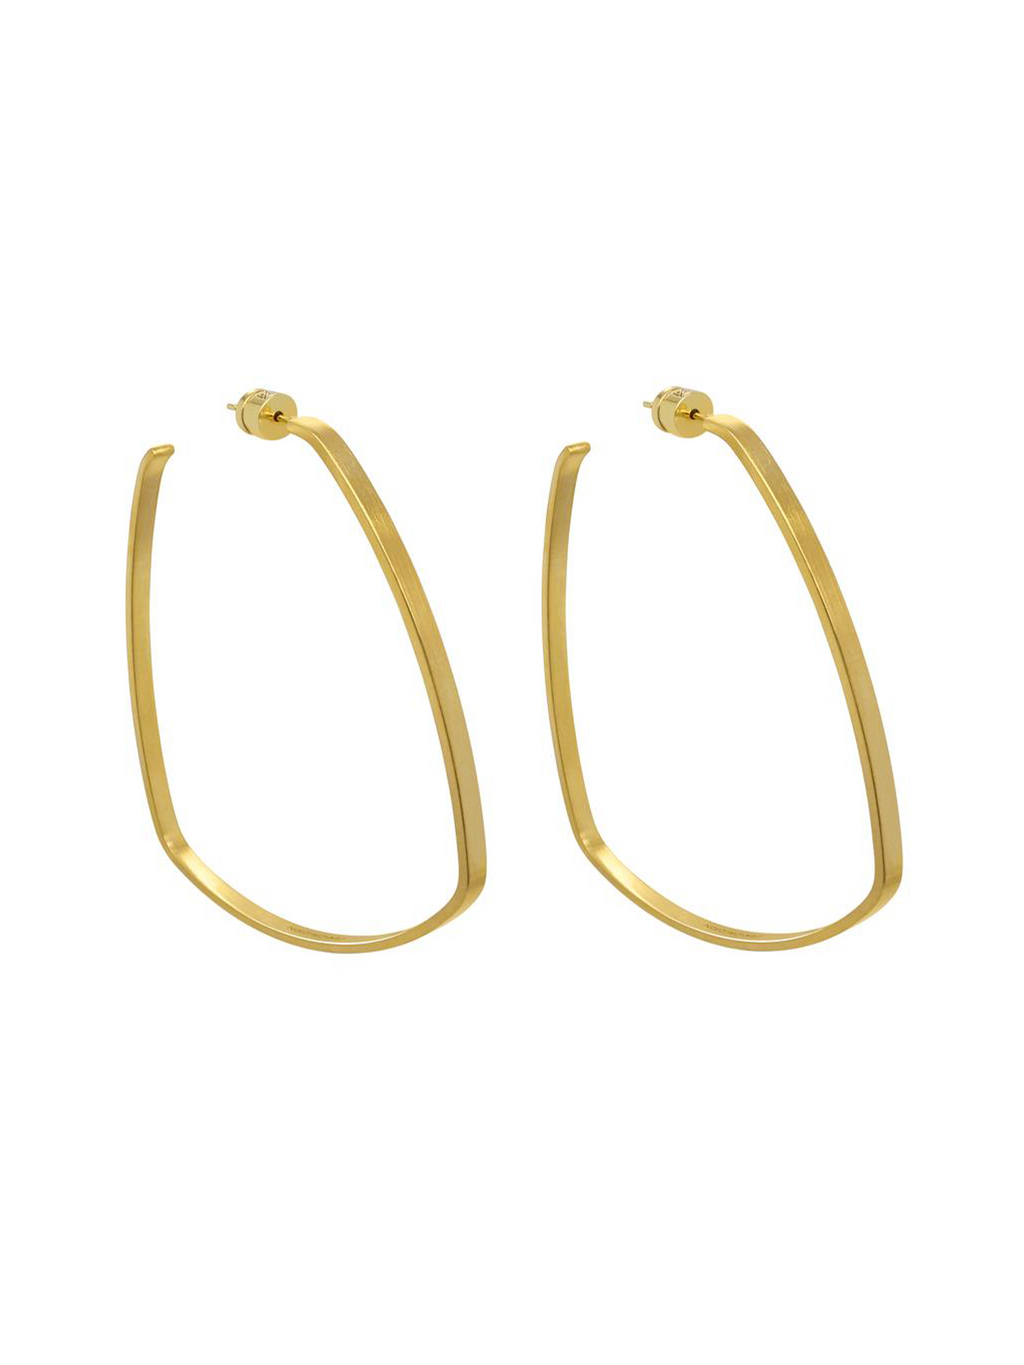 Dean Davidson Large Square Hoops